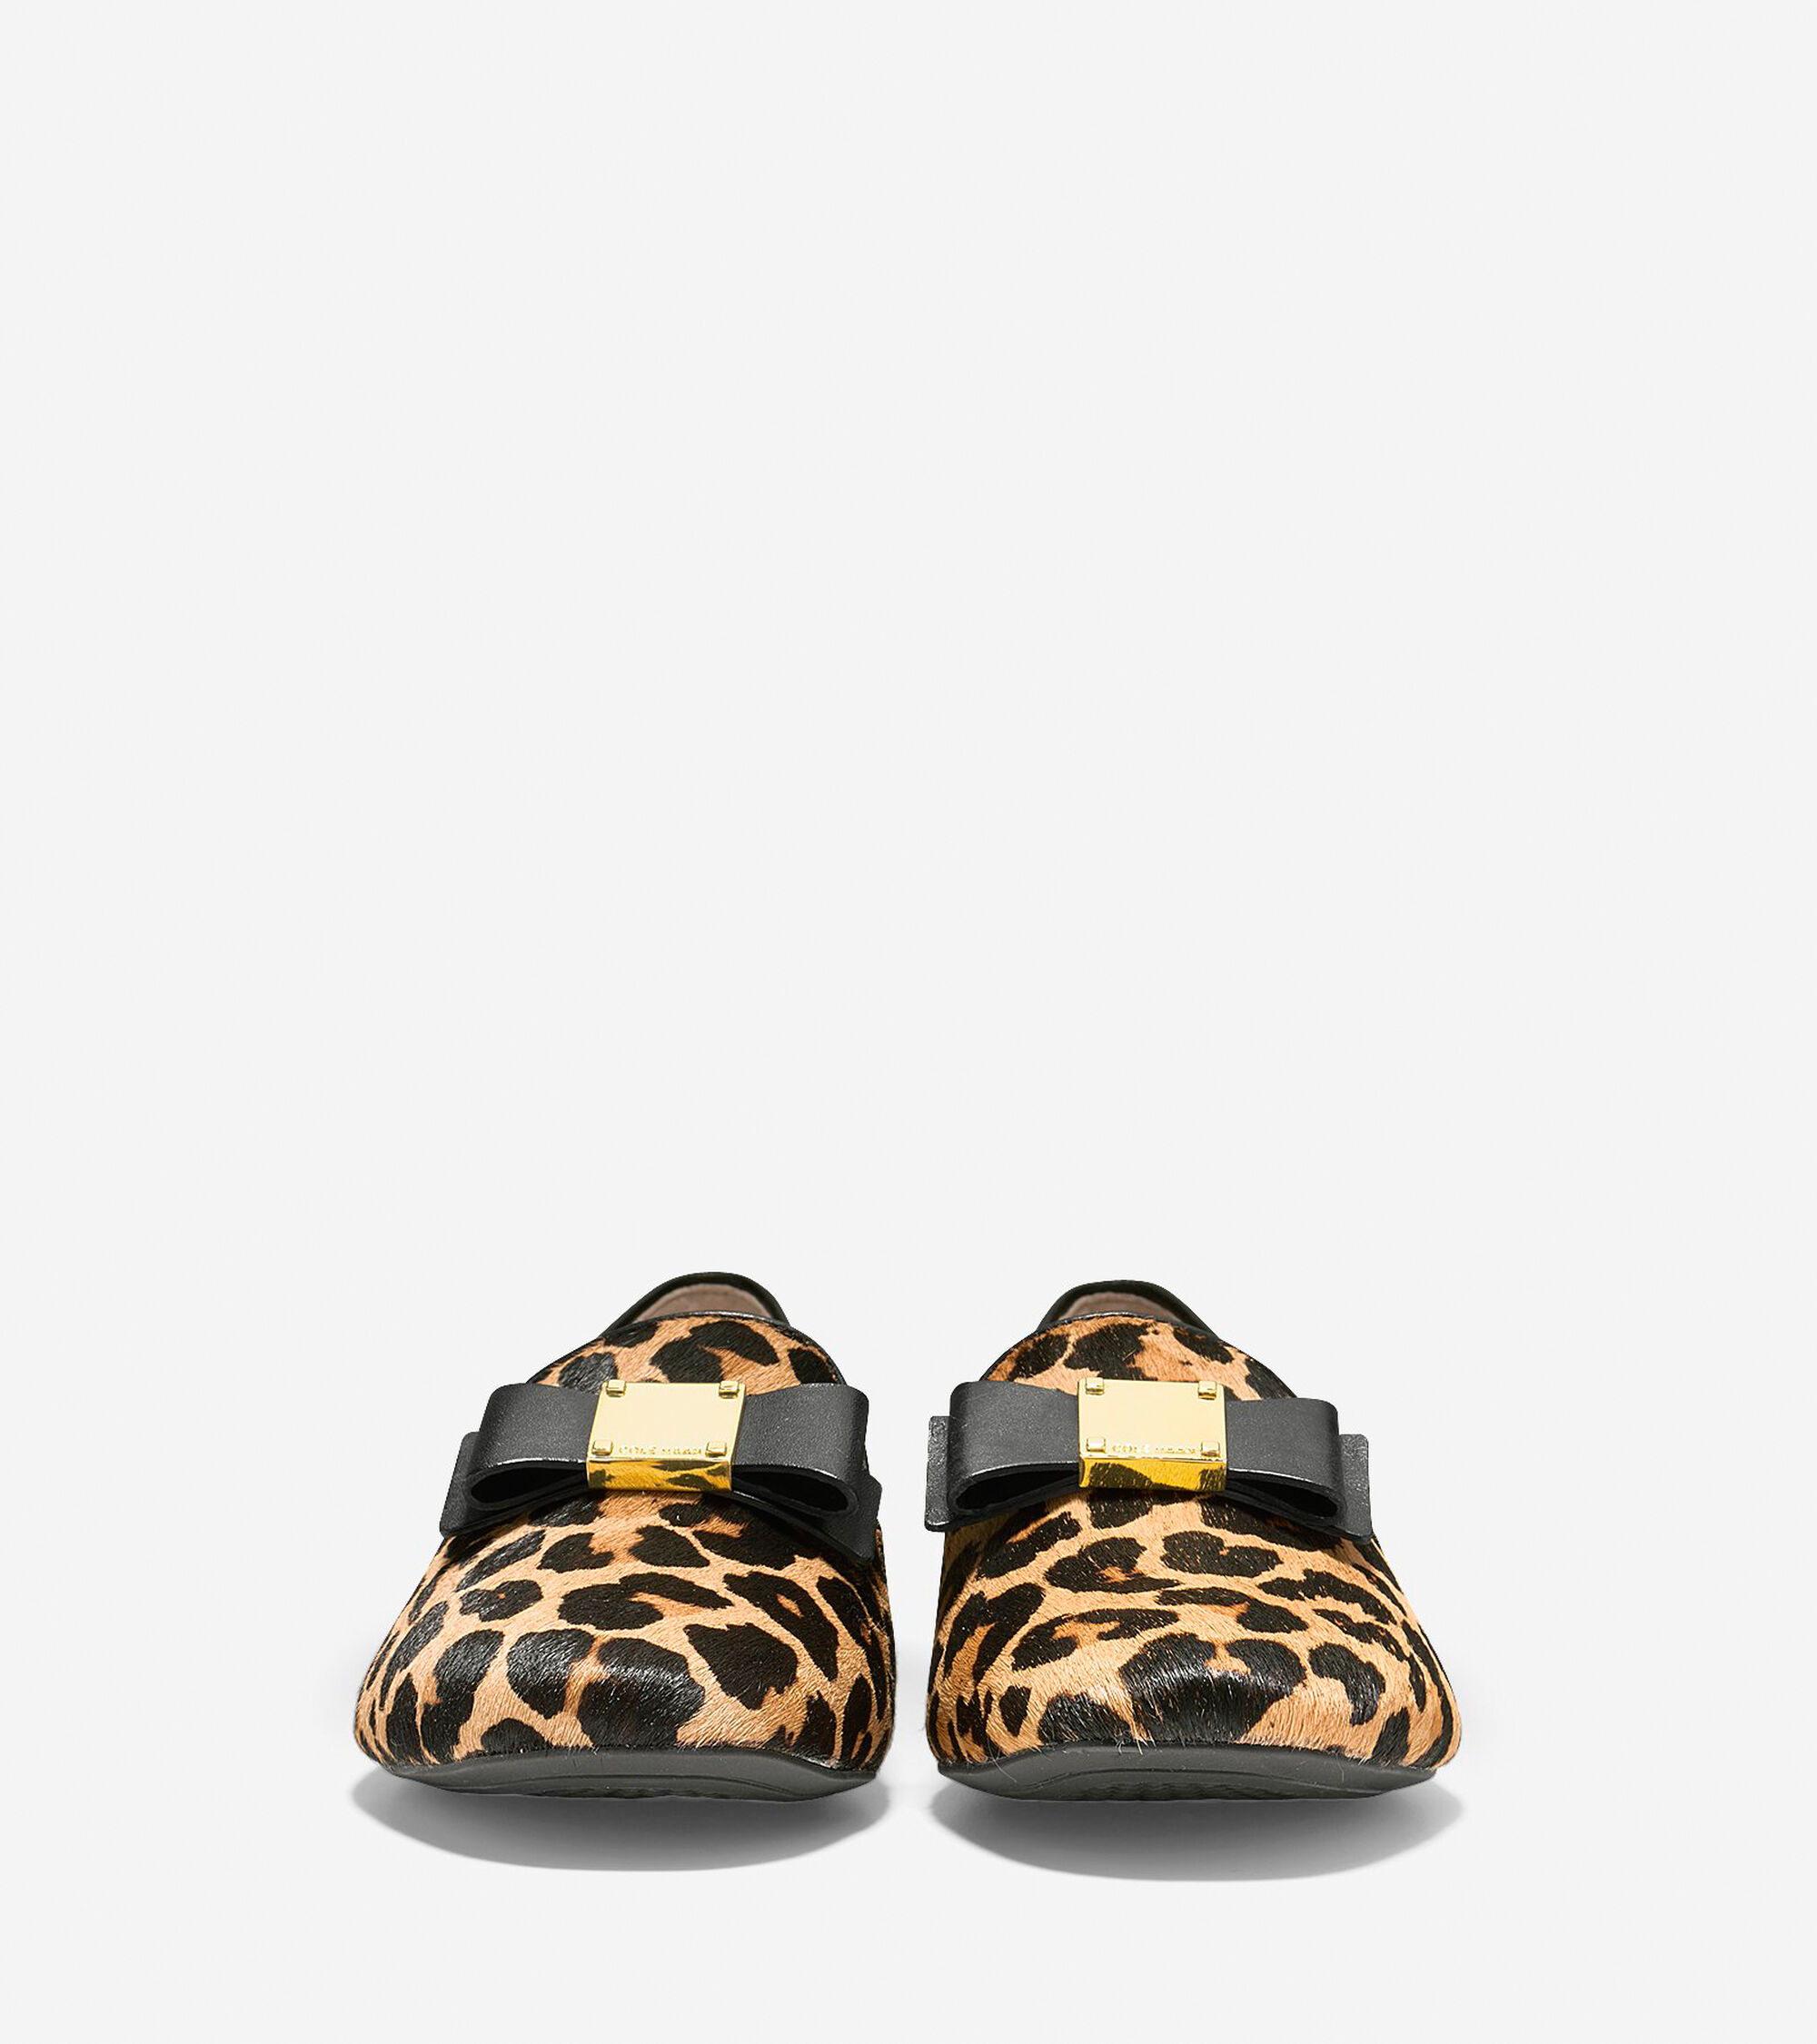 17c94f2e4c4 Women s Tali Bow Loafers in Ocelot Print Haircalf